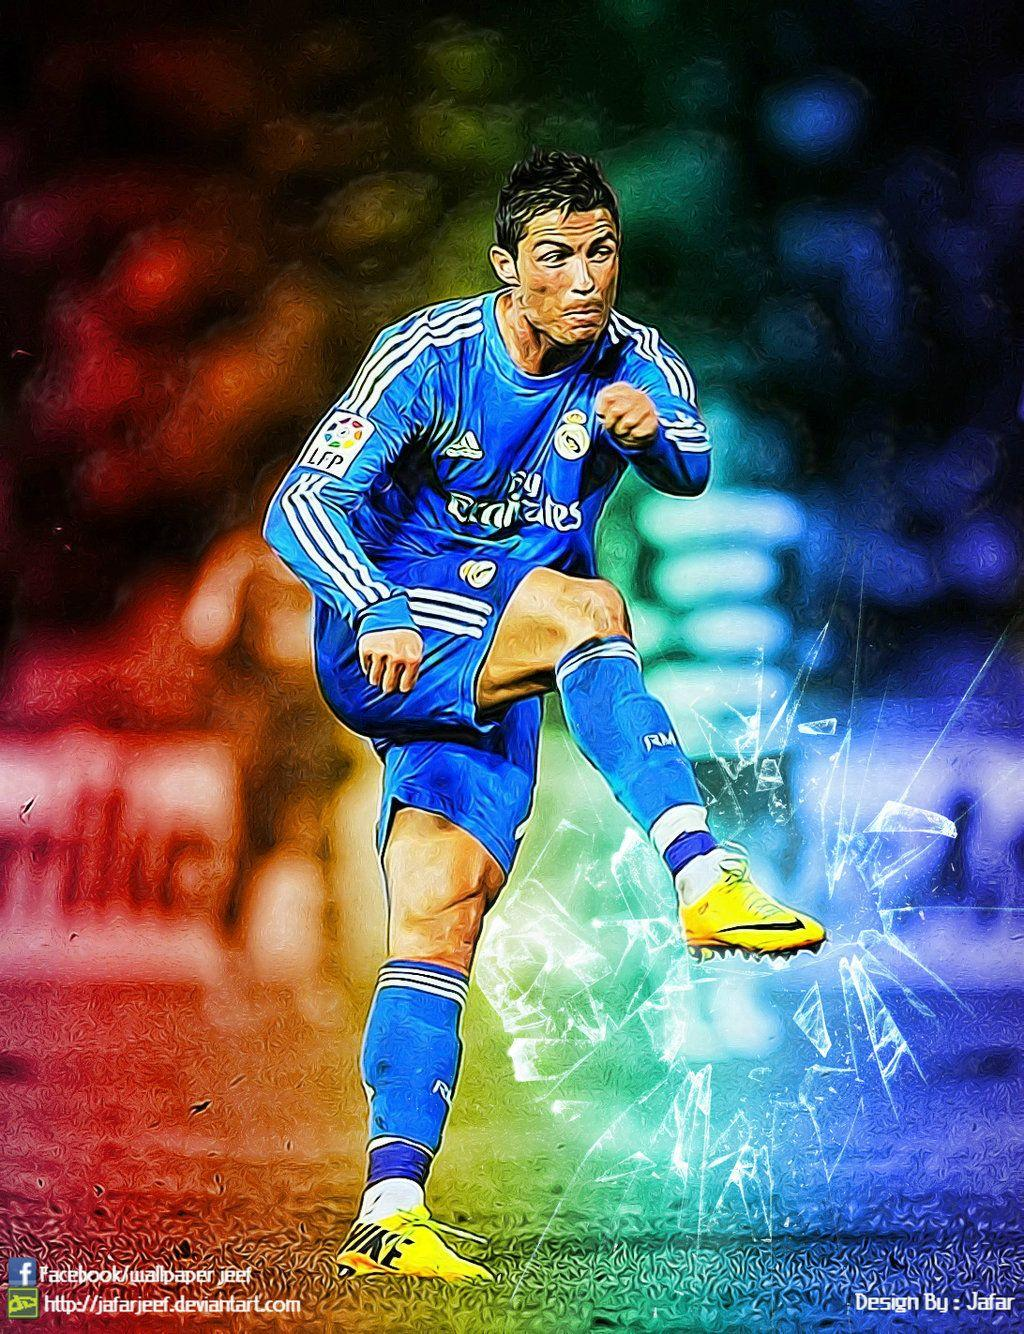 Cristiano Ronaldo Real Madrid 2014 By Jafarjeef On DeviantArt